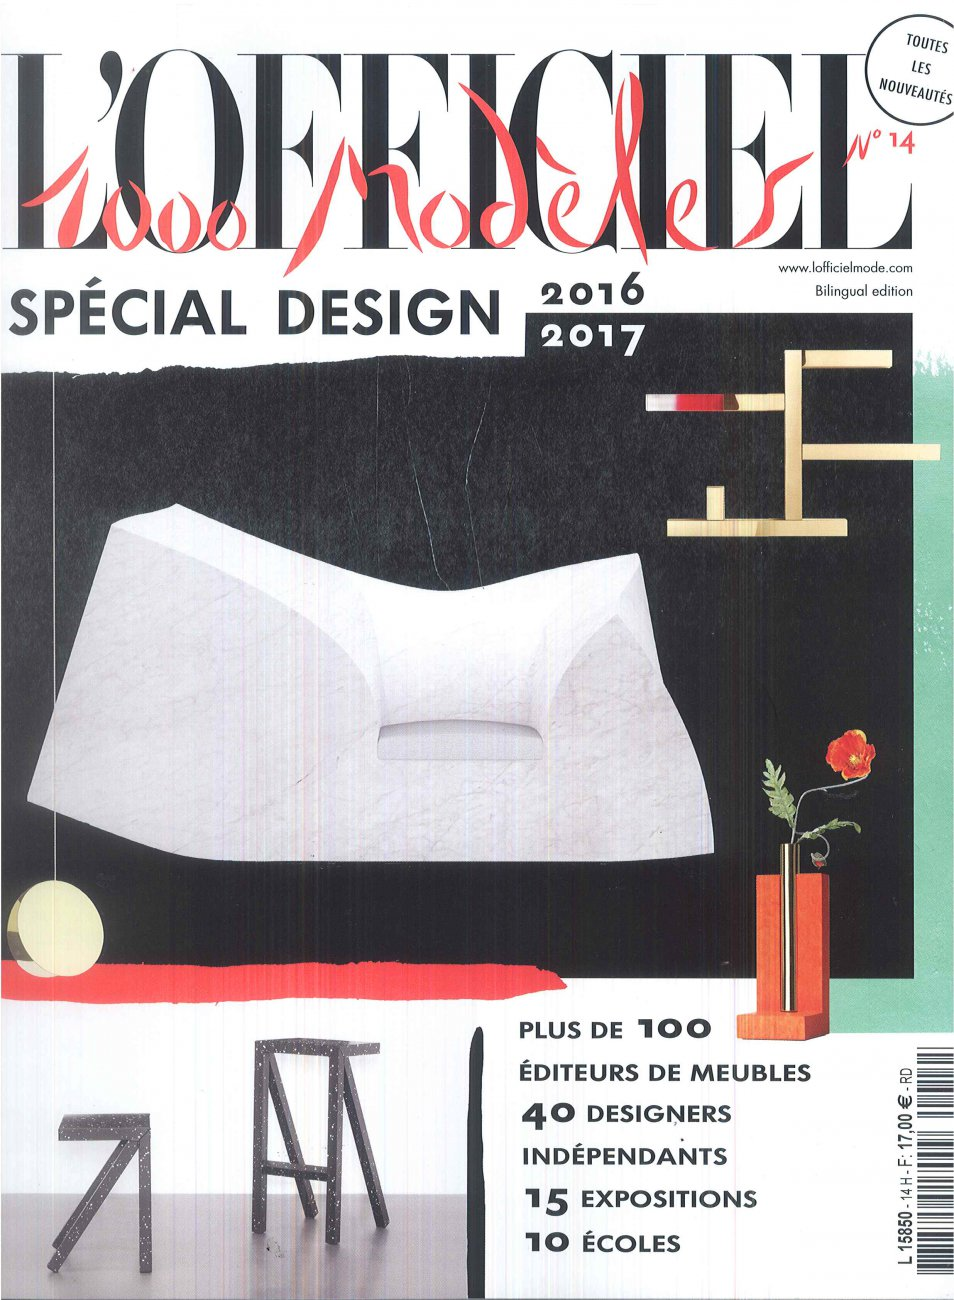 L'Officiel N°14 - Spécial Design / 2016 - 2017 / L'Officiel